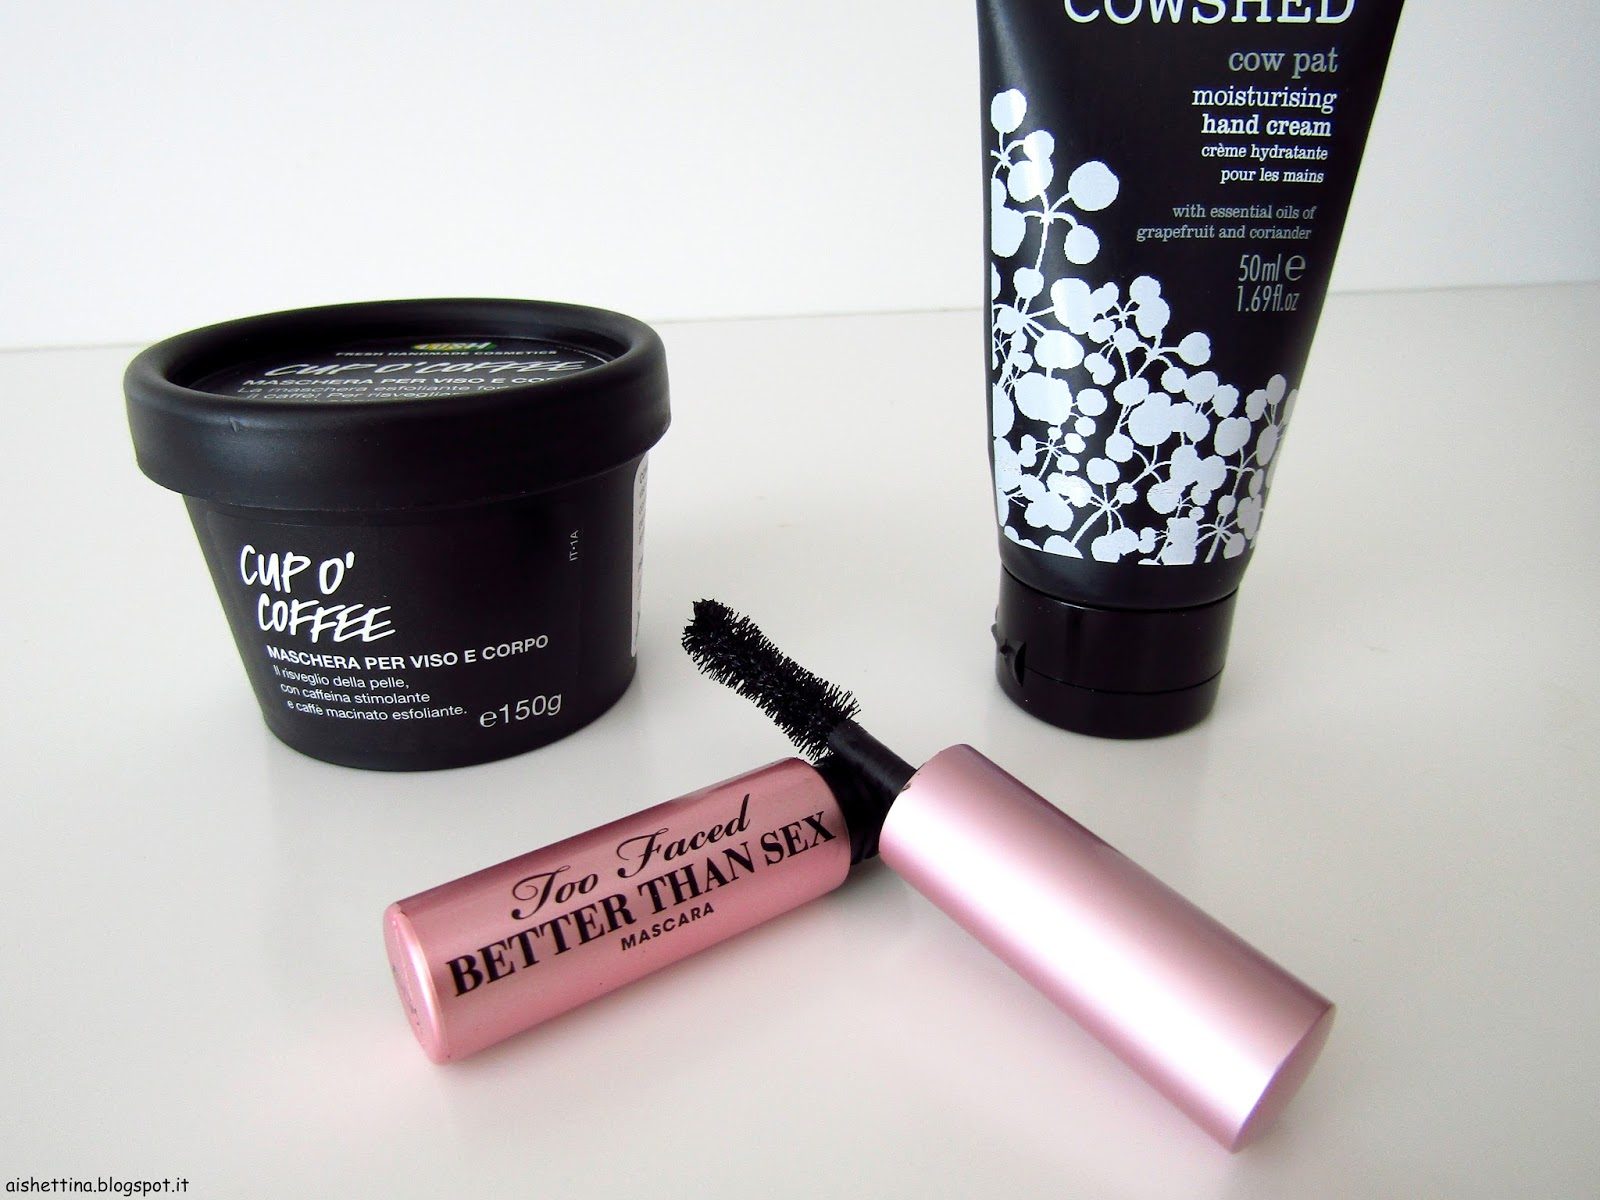 Lush, Too Faced, Cowshed